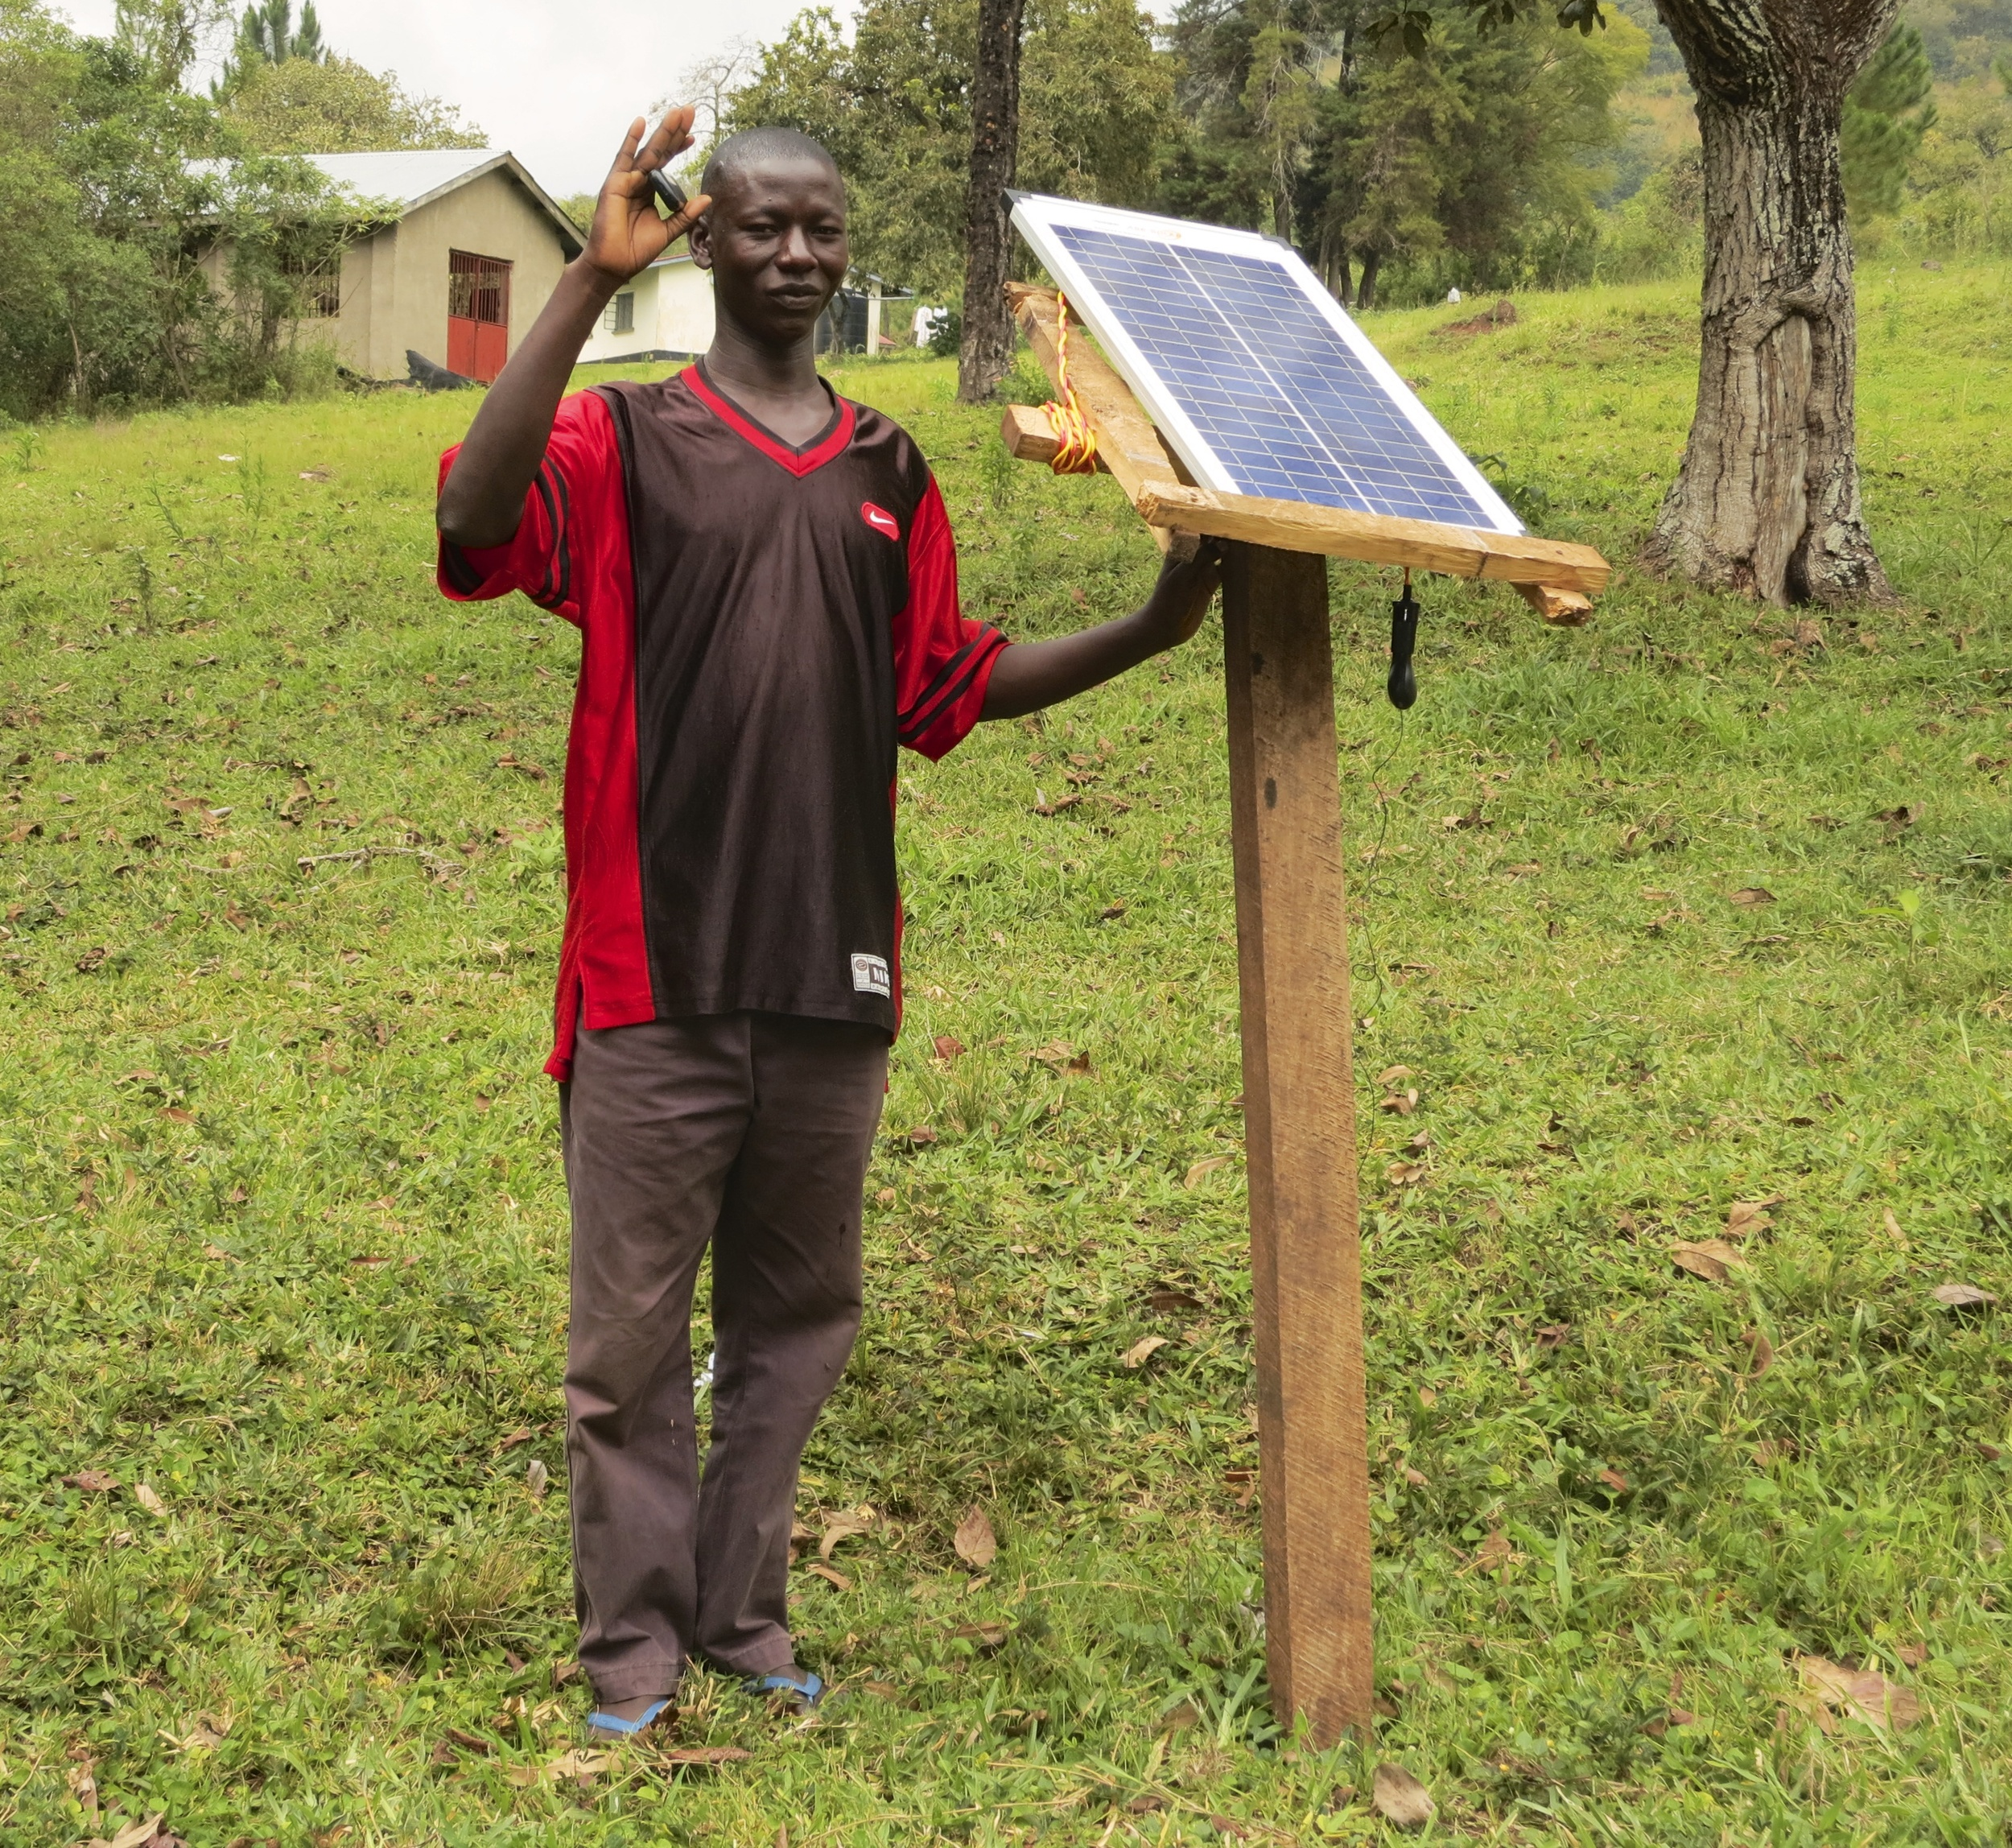 Charging his cell phone at a solar panel.  Solar energy widespread because electricity infrastructure is unreliable.